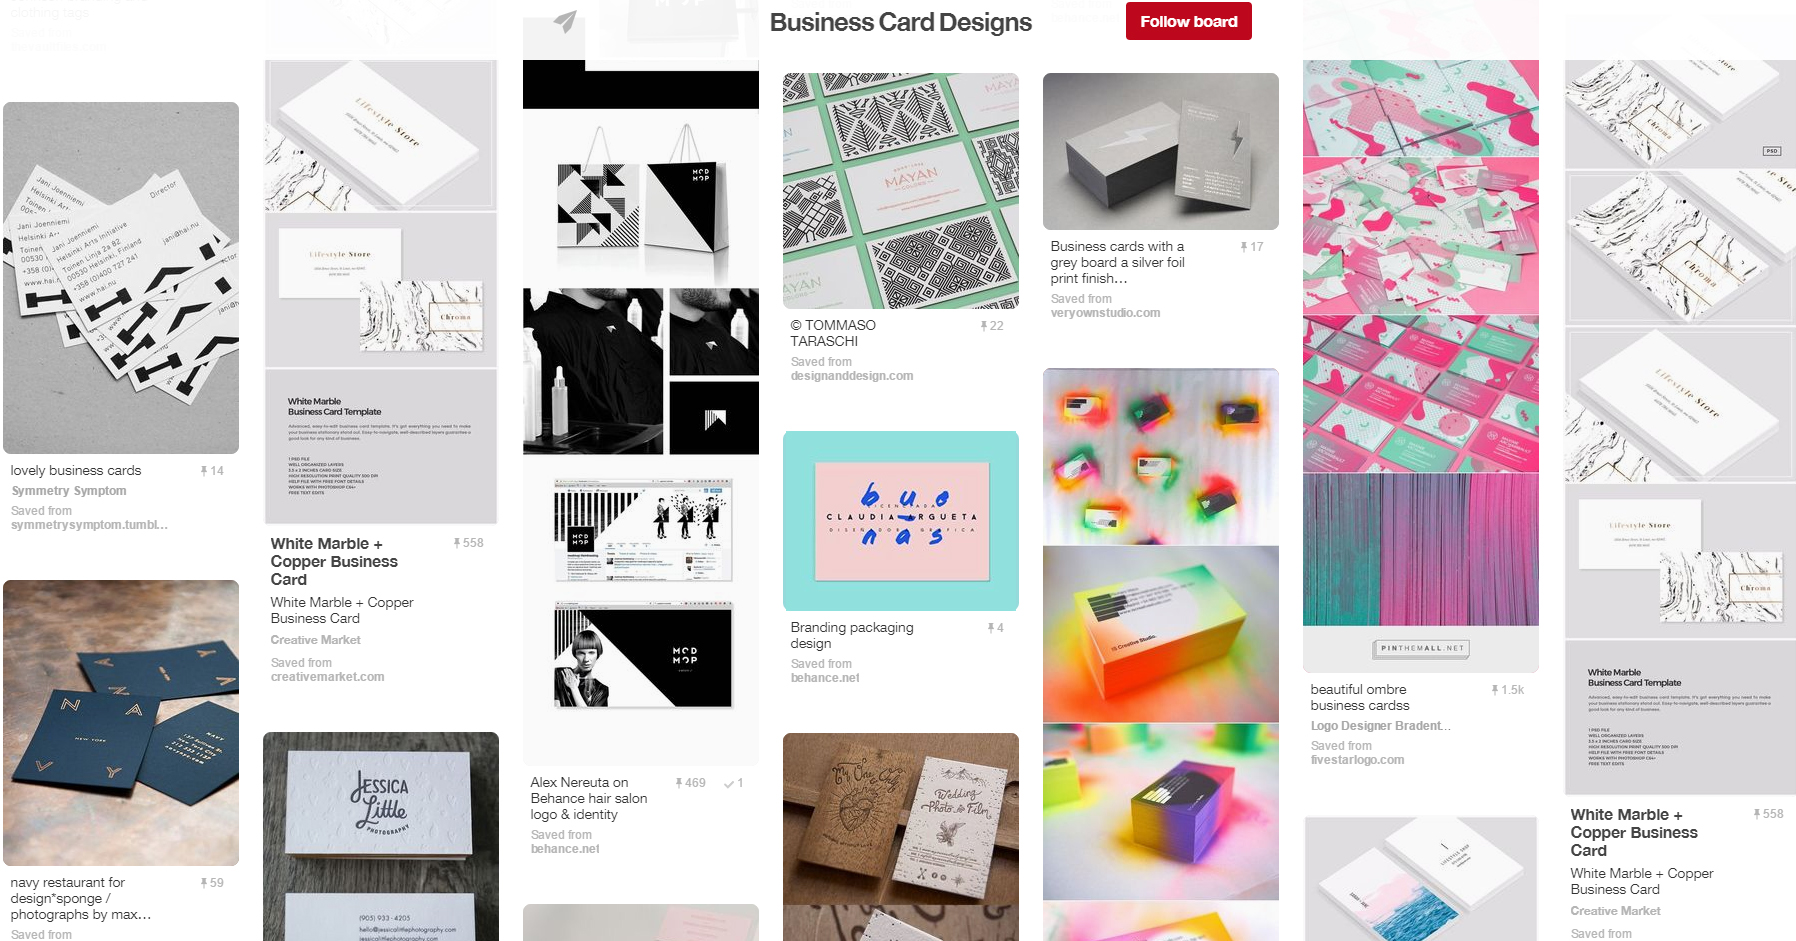 15 inspiring design boards to follow on pinterest graphicmama blog business card designs pinterest board reheart